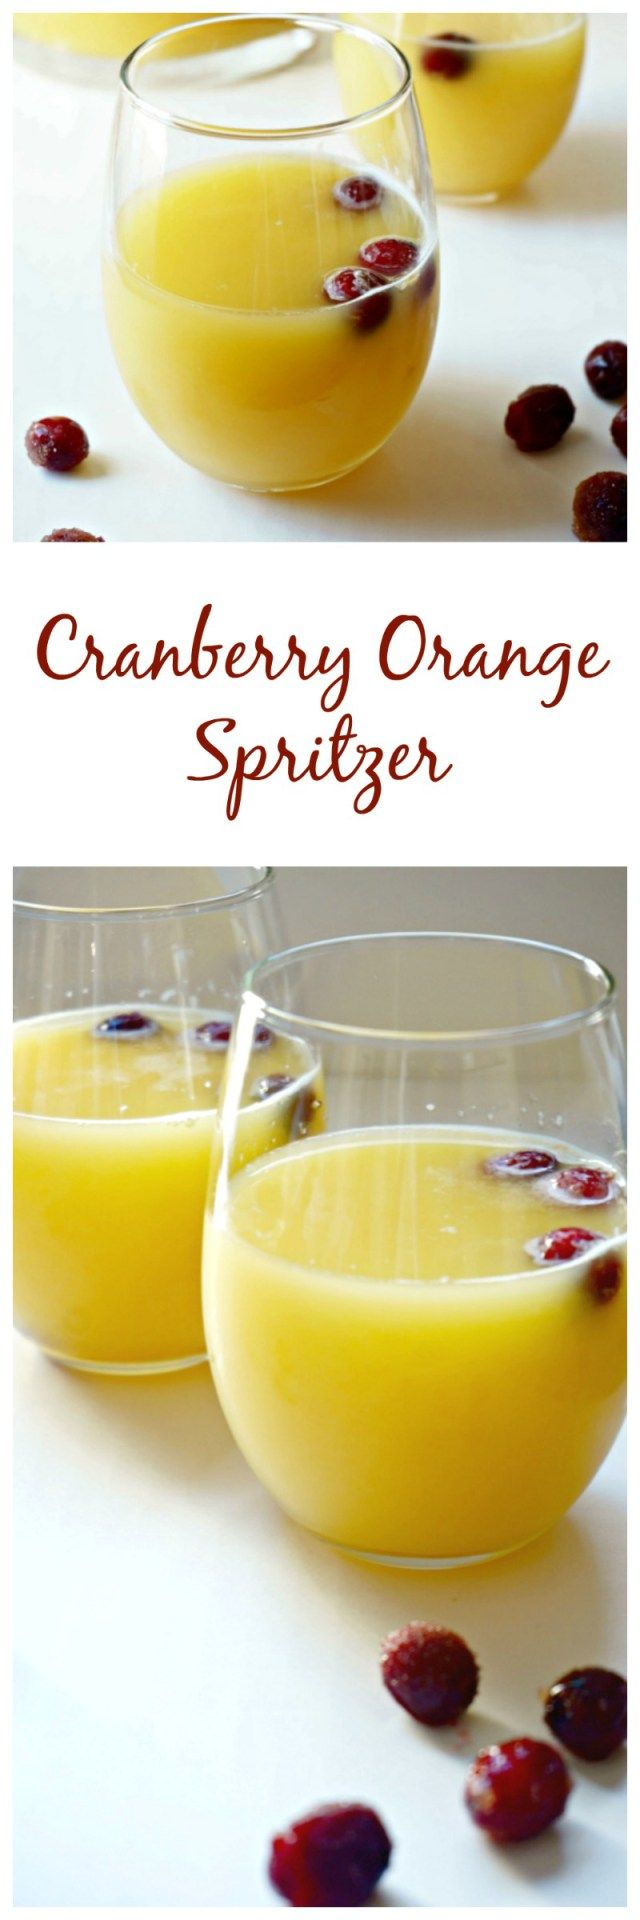 Cranberry Orange Spritzer: A simple, festive orange and cranberry ...